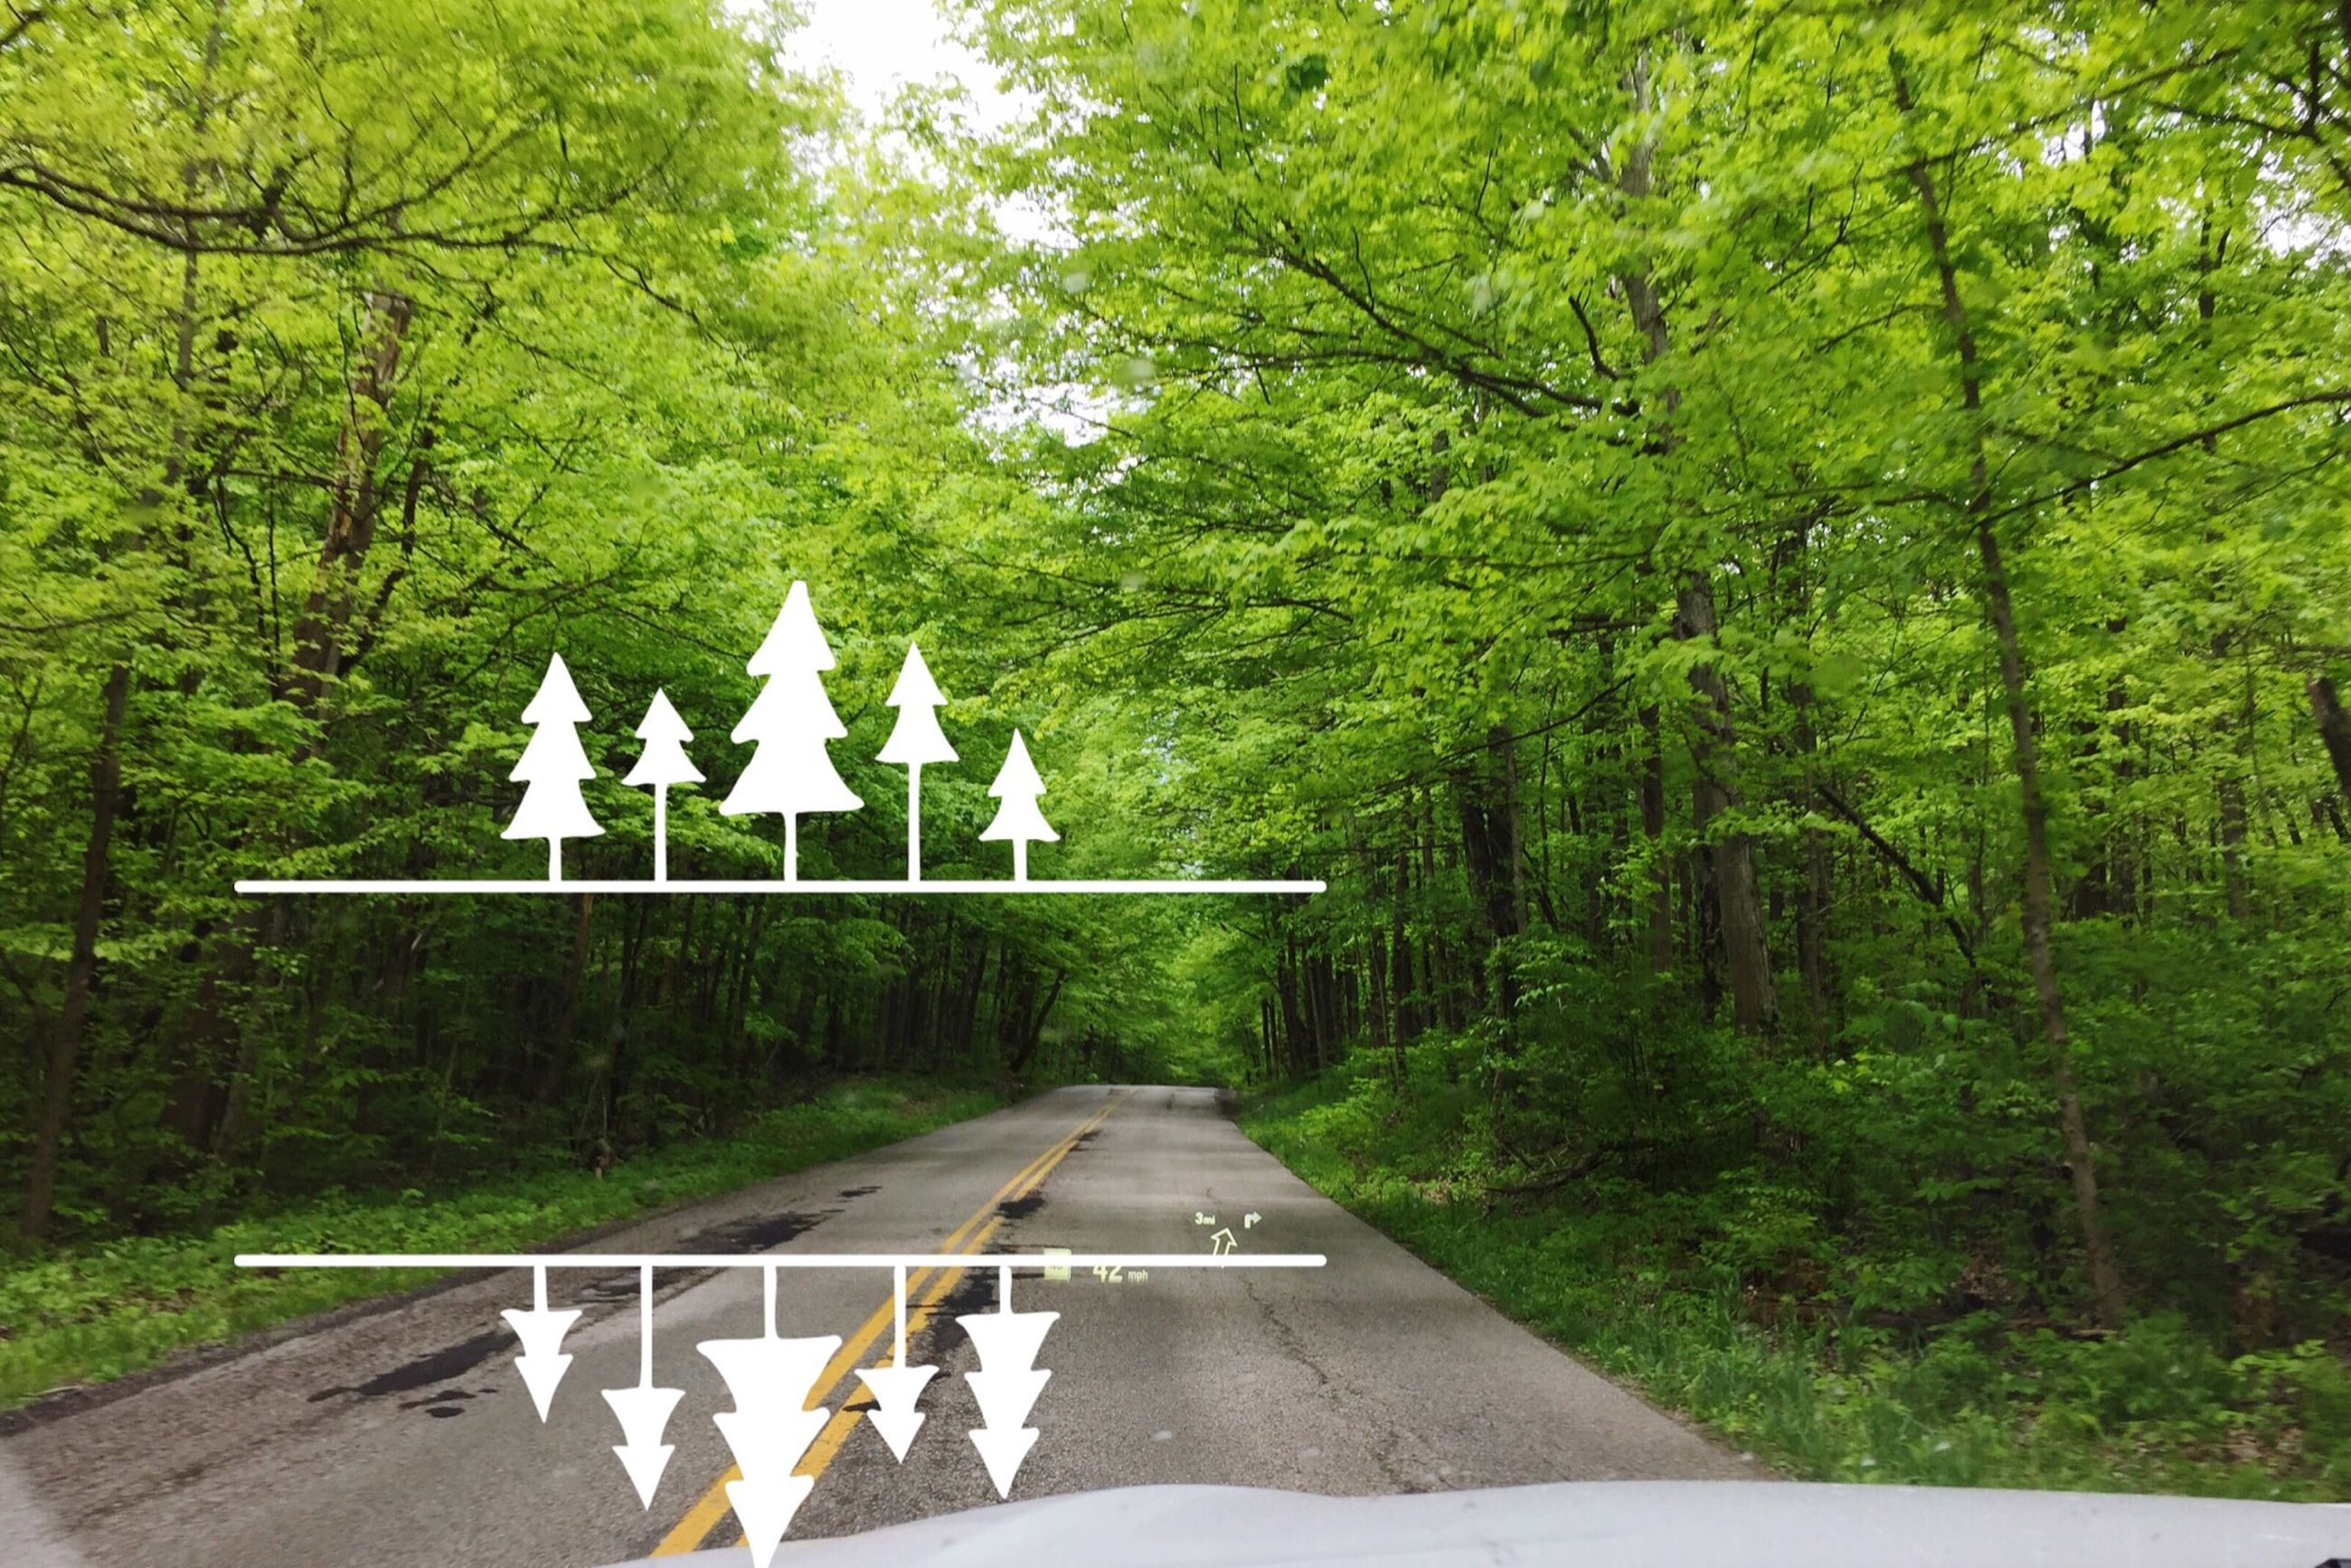 tree, communication, text, western script, day, arrow symbol, transportation, road, road sign, growth, green color, the way forward, directional sign, sign, park - man made space, sunlight, road marking, nature, outdoors, human representation